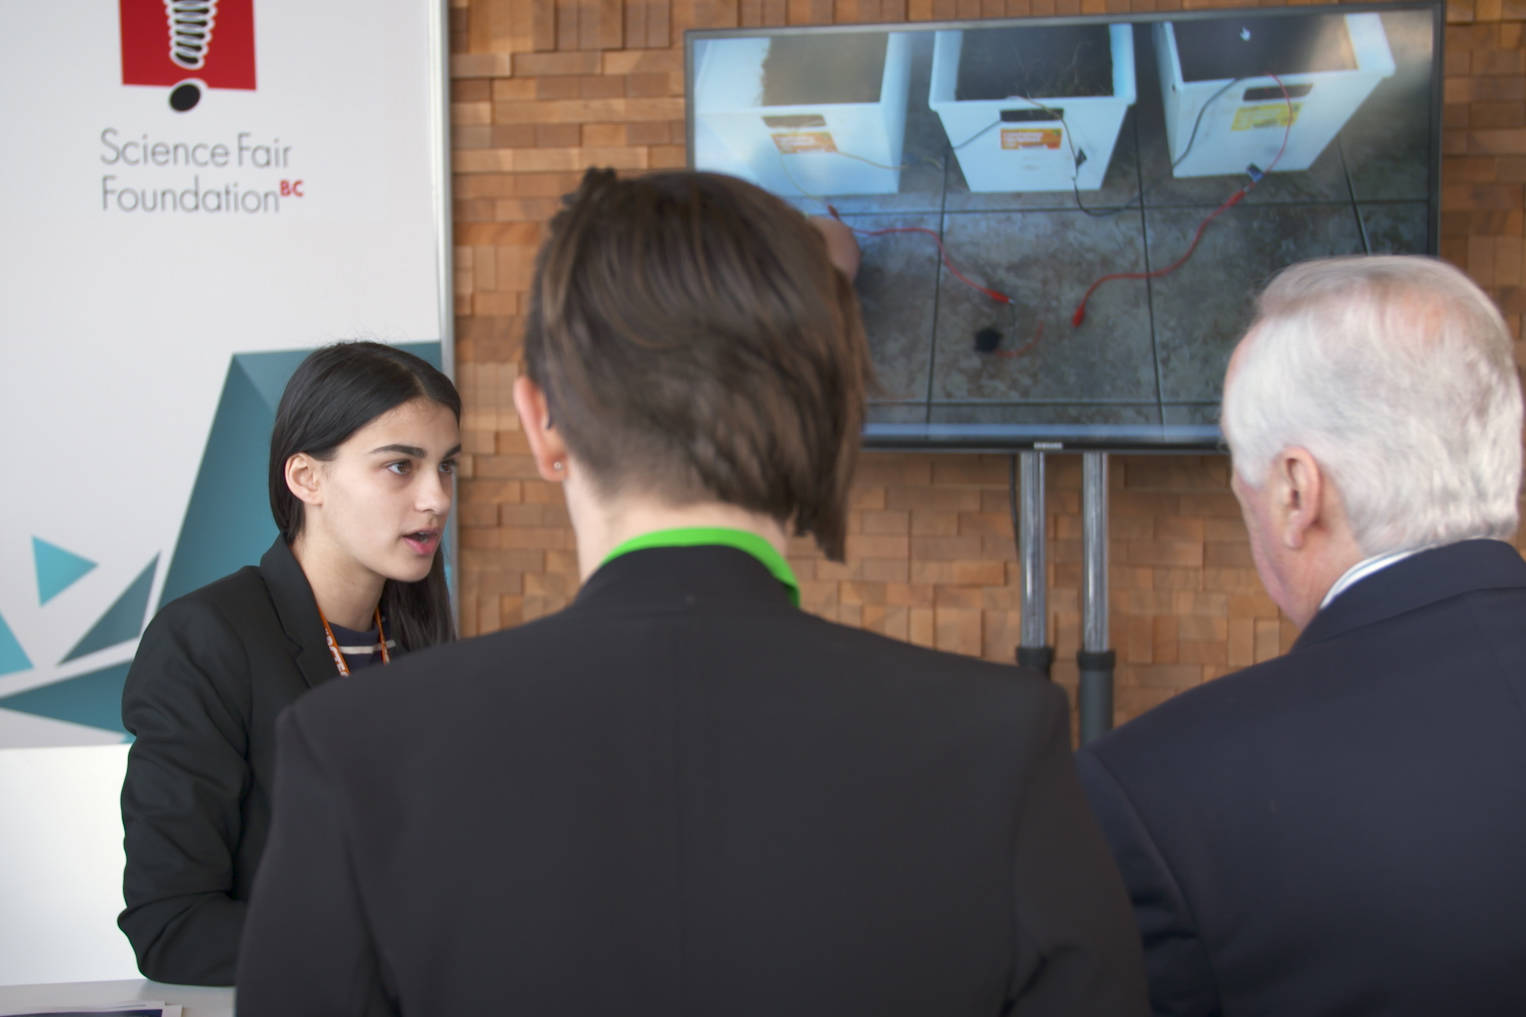 Prince Rupert's Aaliyah Mahboubi (left) explaining her microbe-powered mobile energy innovation (pictured behind her). Submit your selfie video for a chance to present at this year's Youth Innovation Showcase!